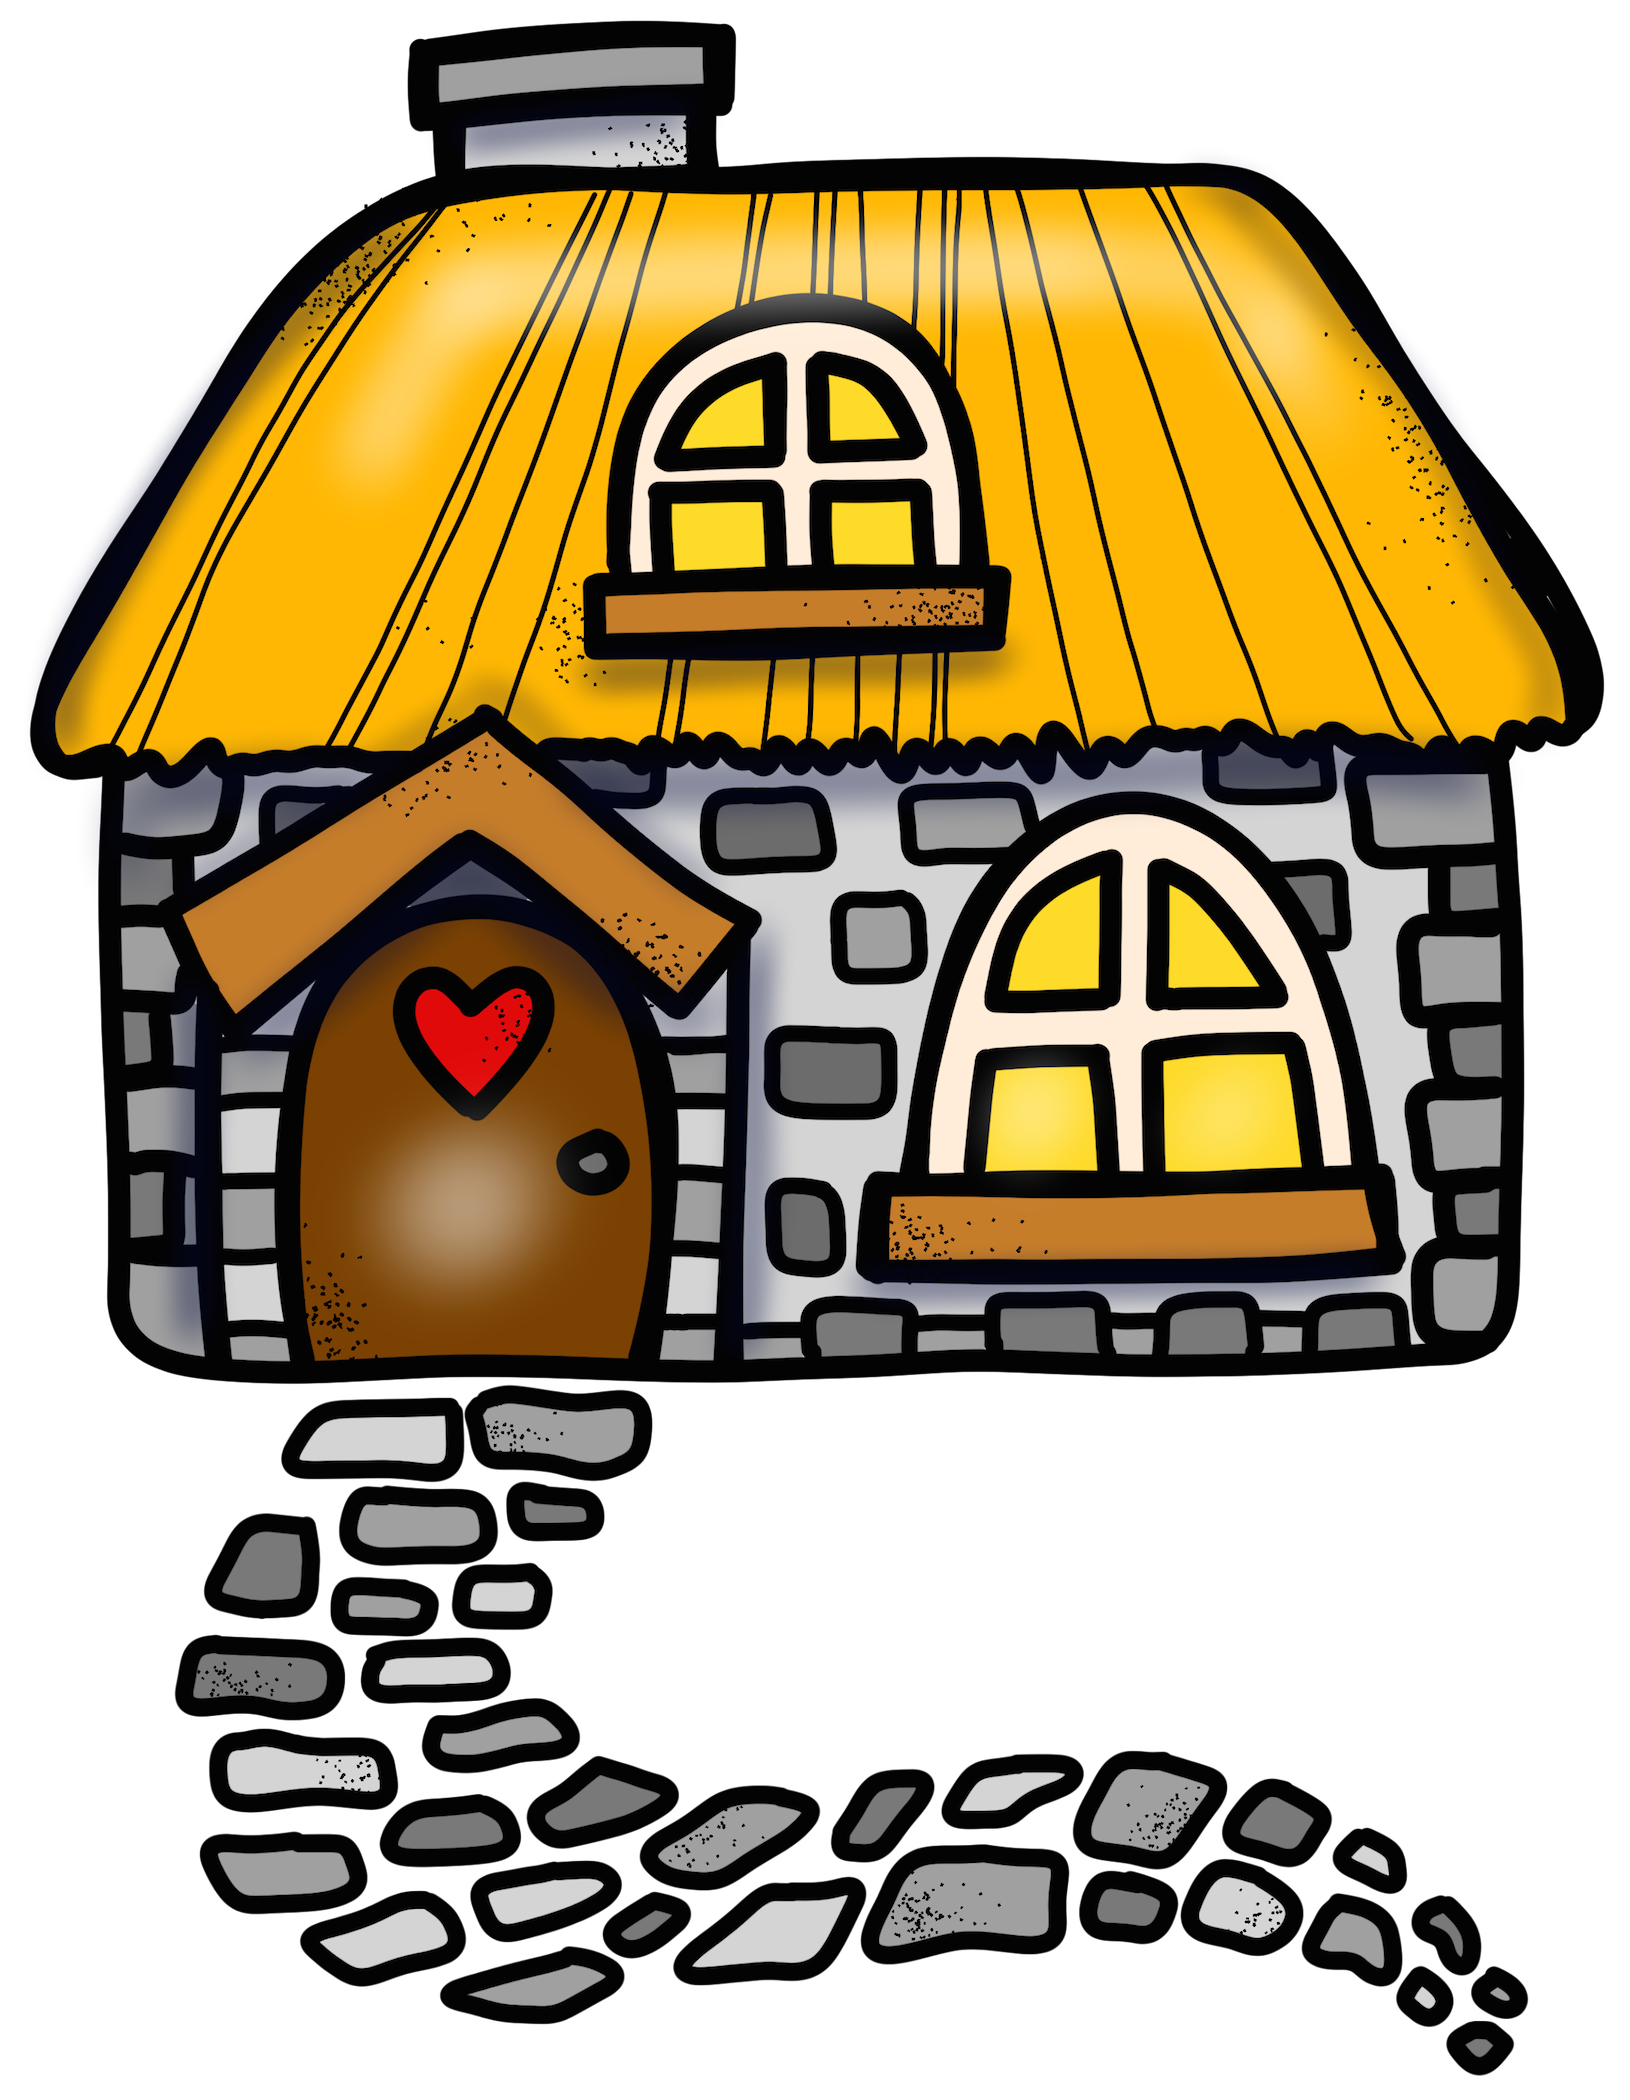 fairy-garden-house.png (Imagen PNG, 1630 × 2100 píxeles) - Escalado ... svg freeuse download